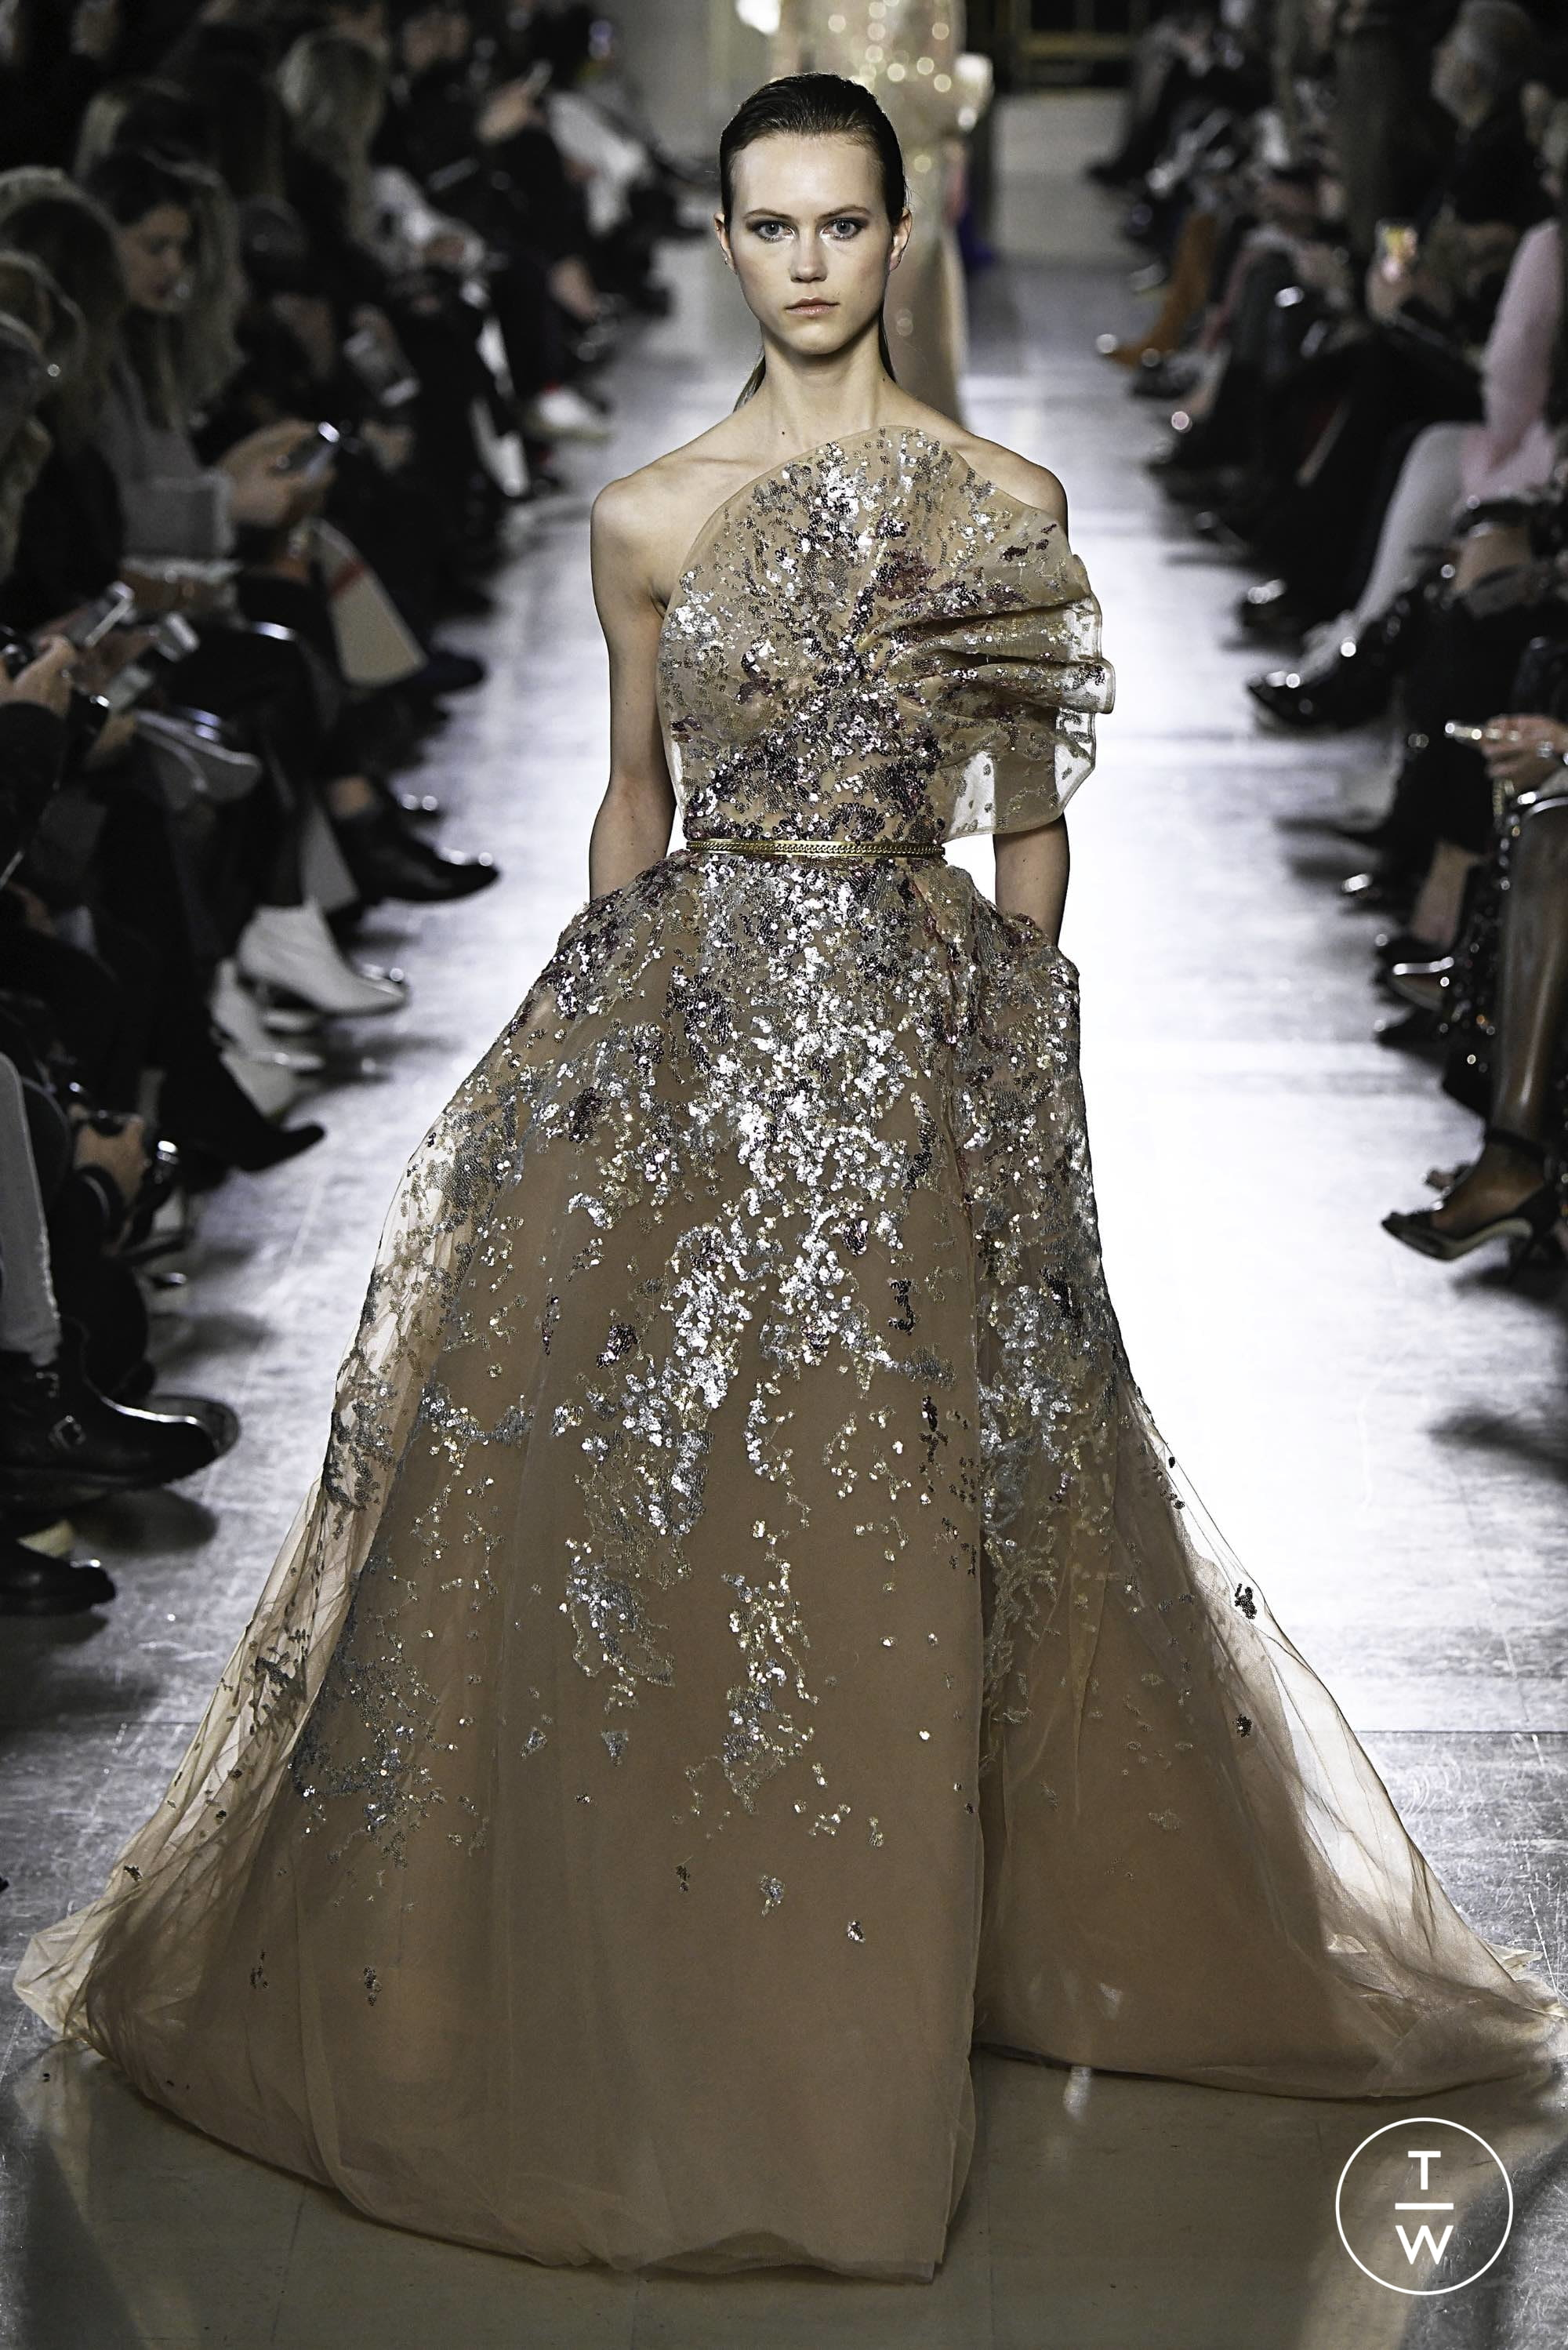 Elie Saab S S19 Couture 45 The Fashion Search Engine Tagwalk